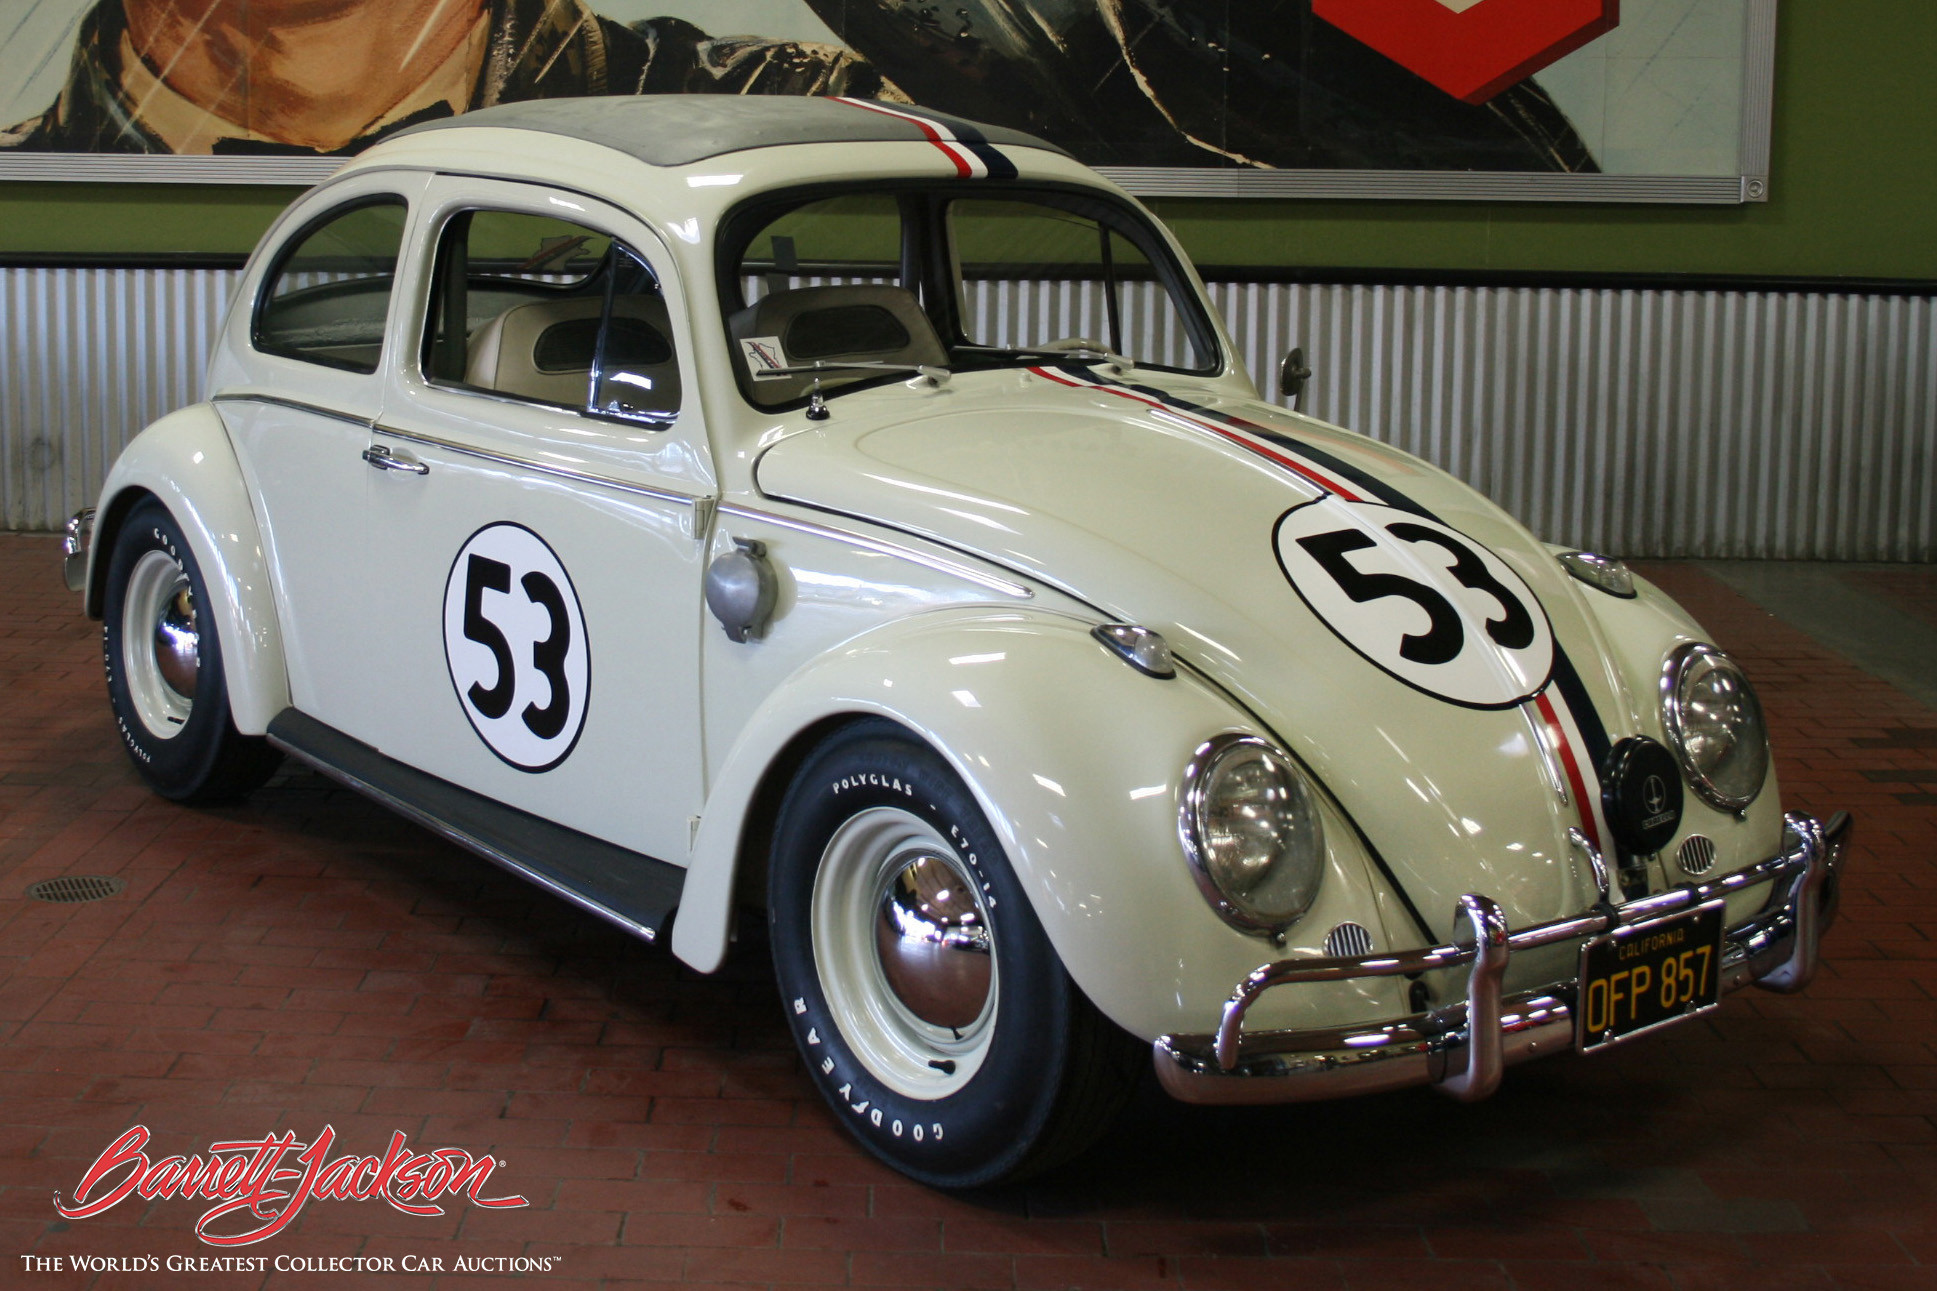 Res: 1937x1291, Herbie images Herbie HD wallpaper and background photos